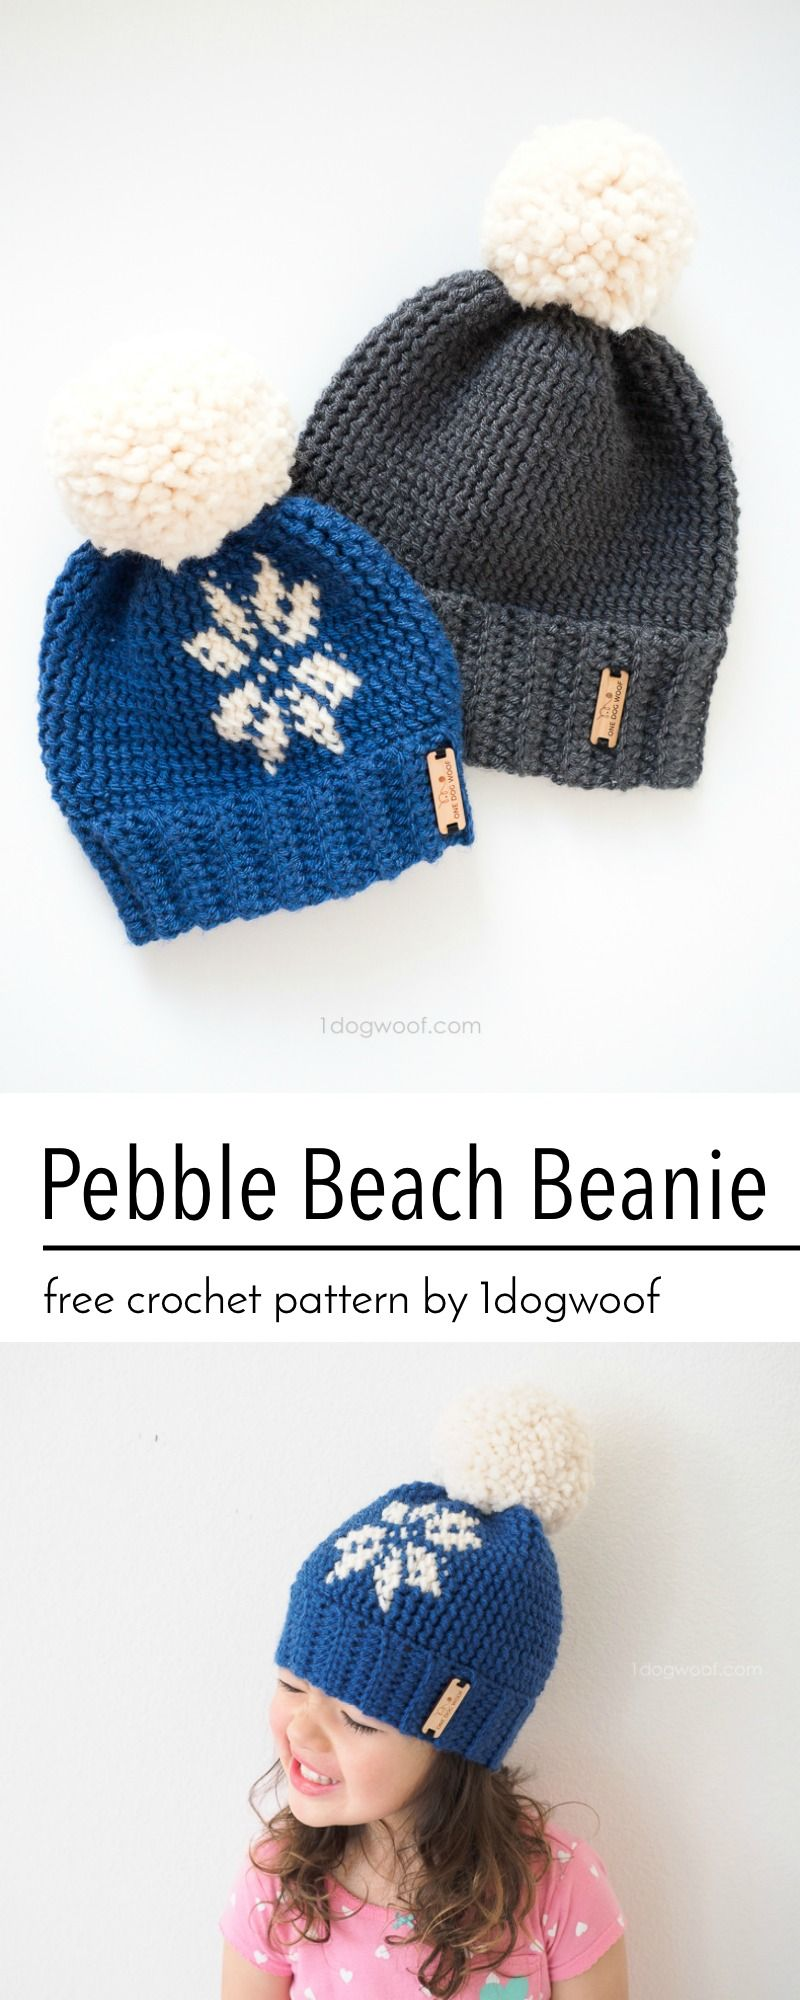 Pebble Beach Beanie Crochet Pattern | Pinterest | Gorros, Tejido y ...